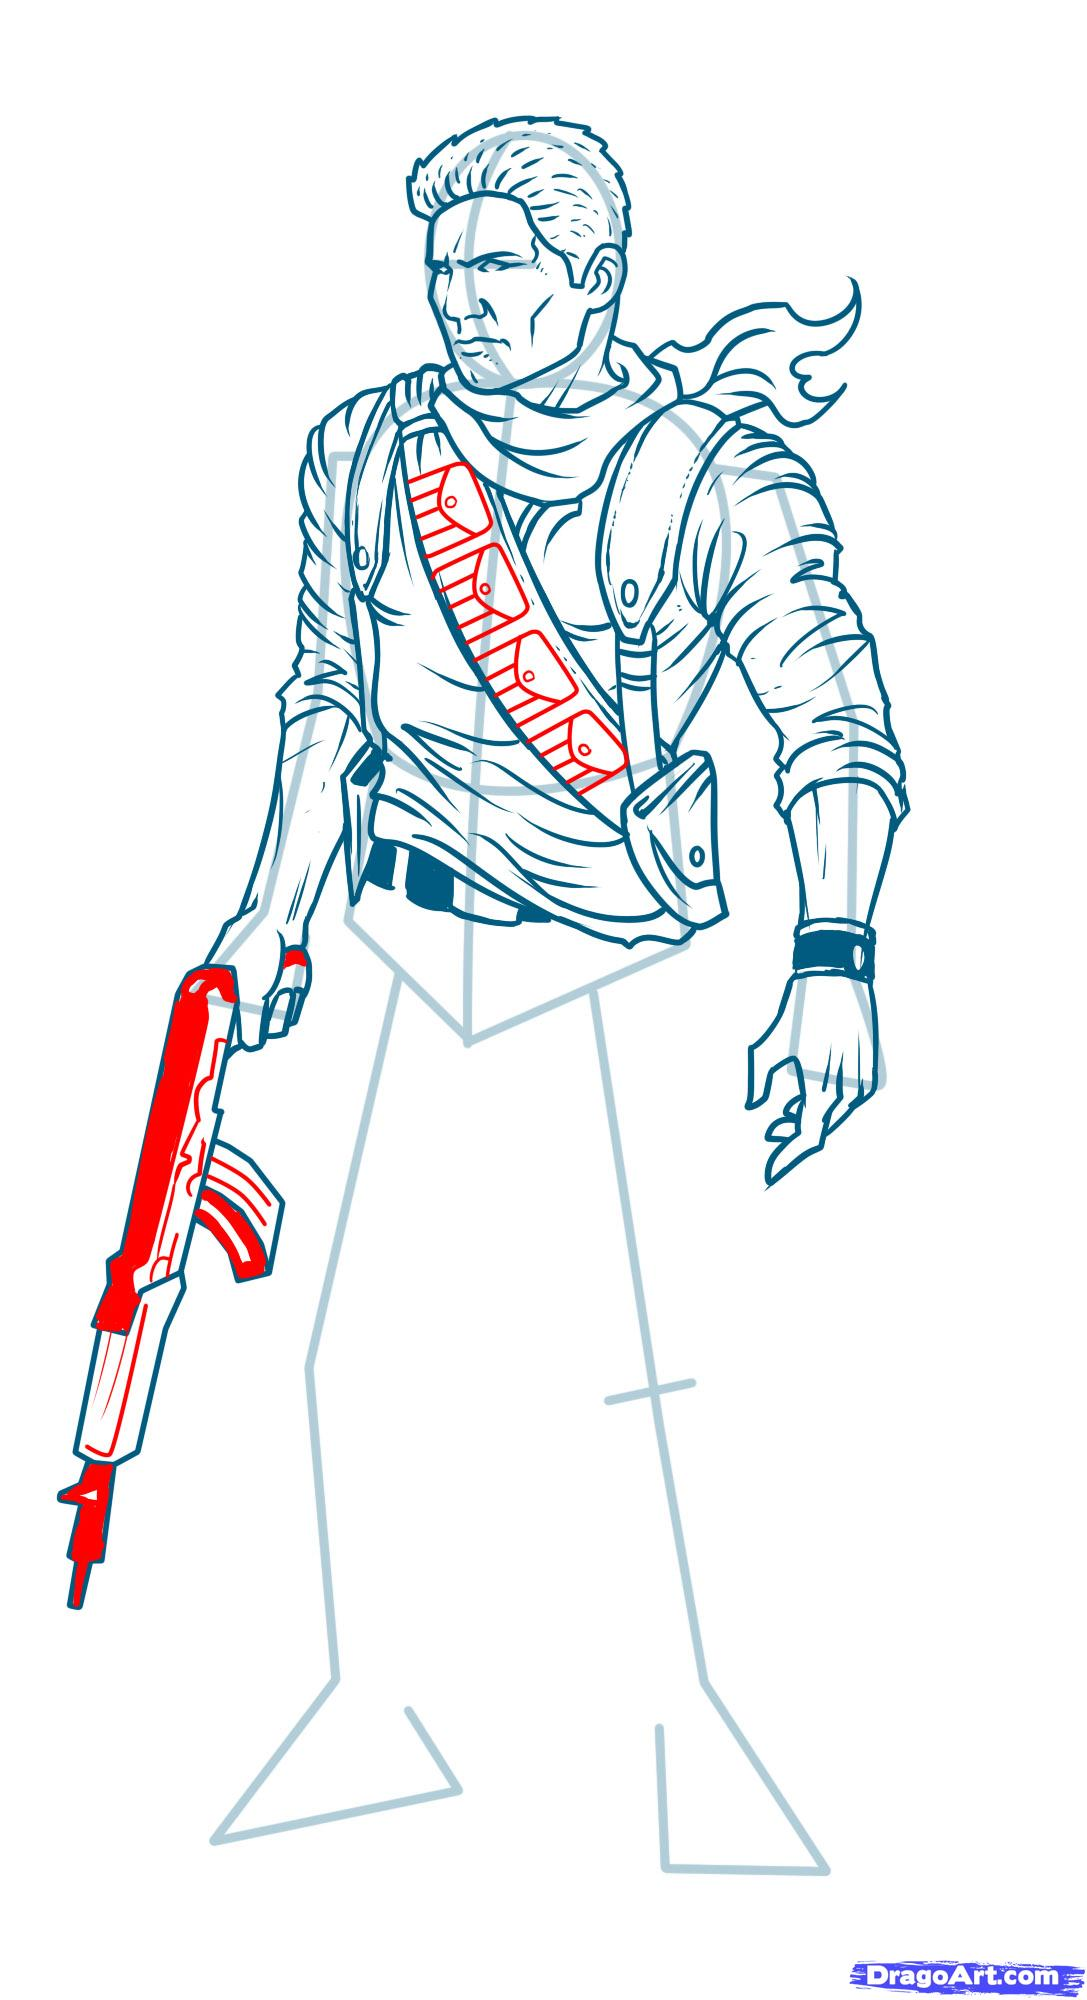 Drawn shotgun draw a Uncharted Video Draw Uncharted